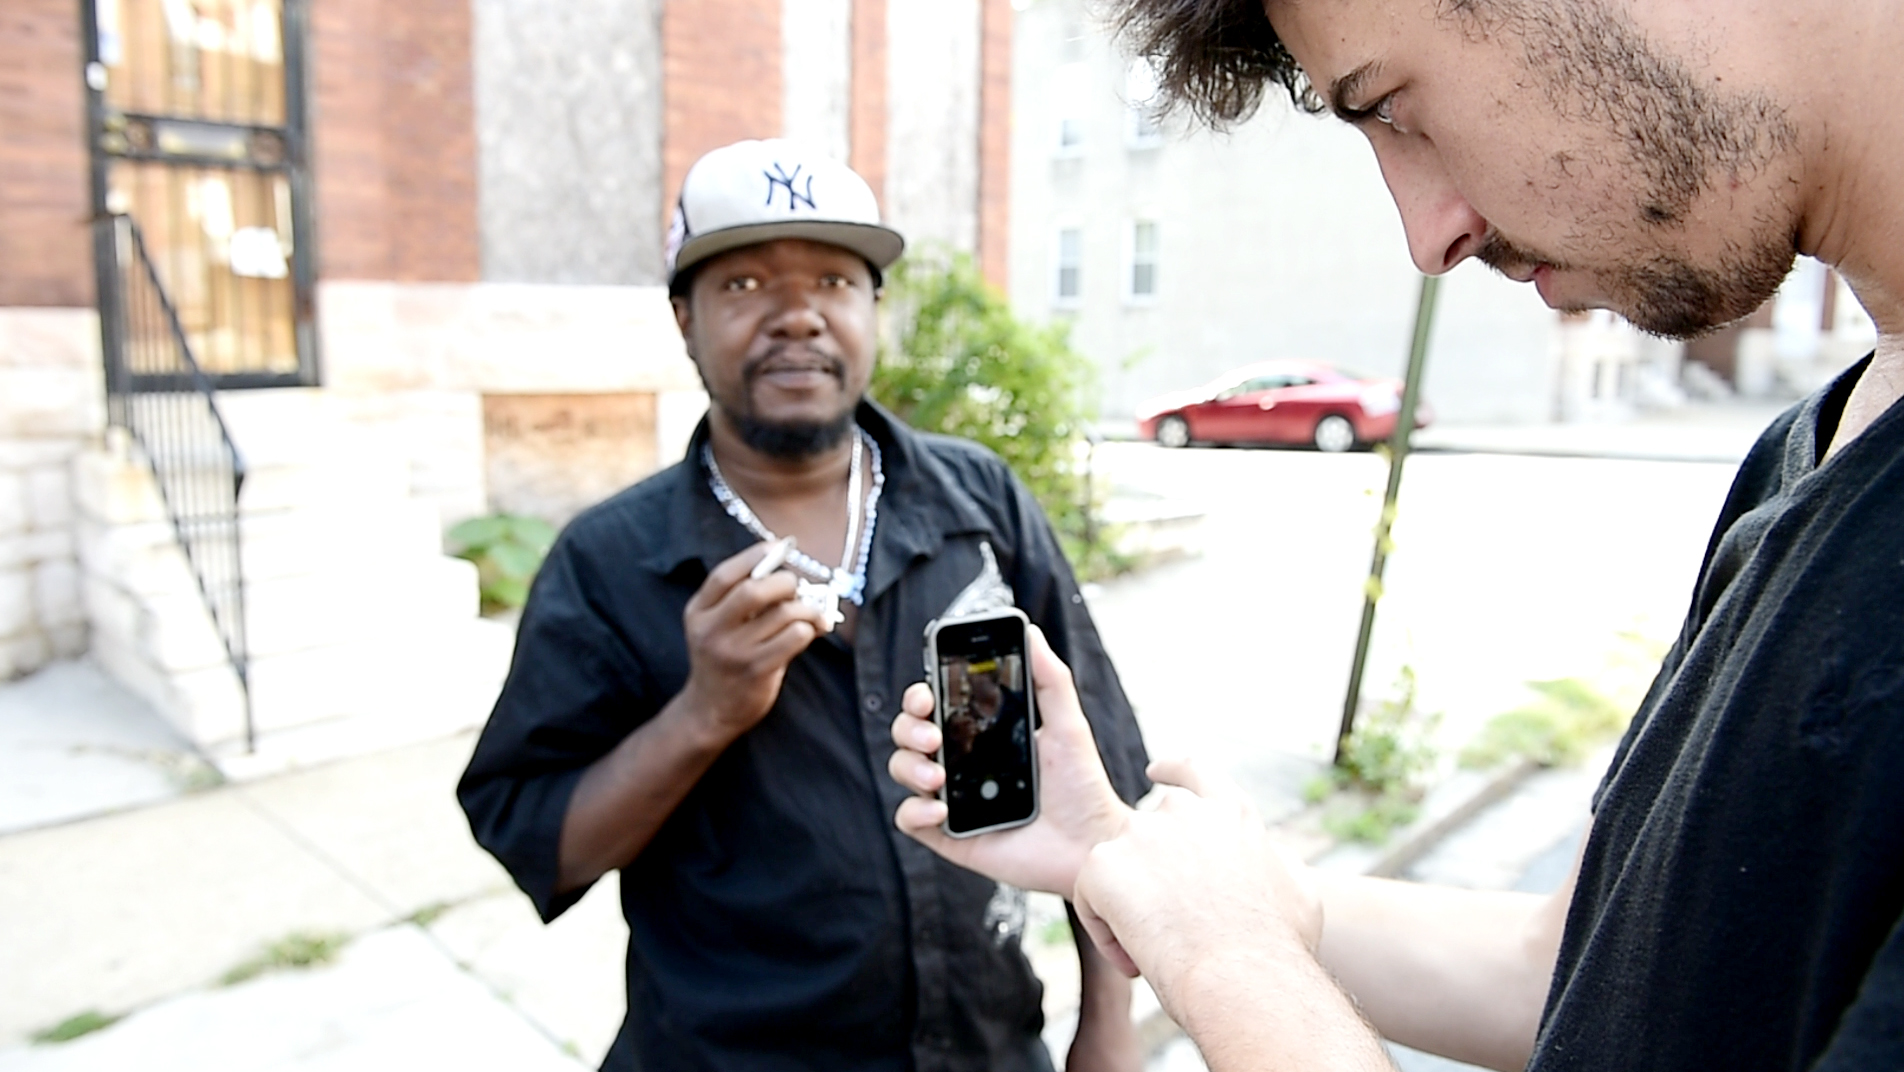 Noah Scialom, Baltimore Street Photographer